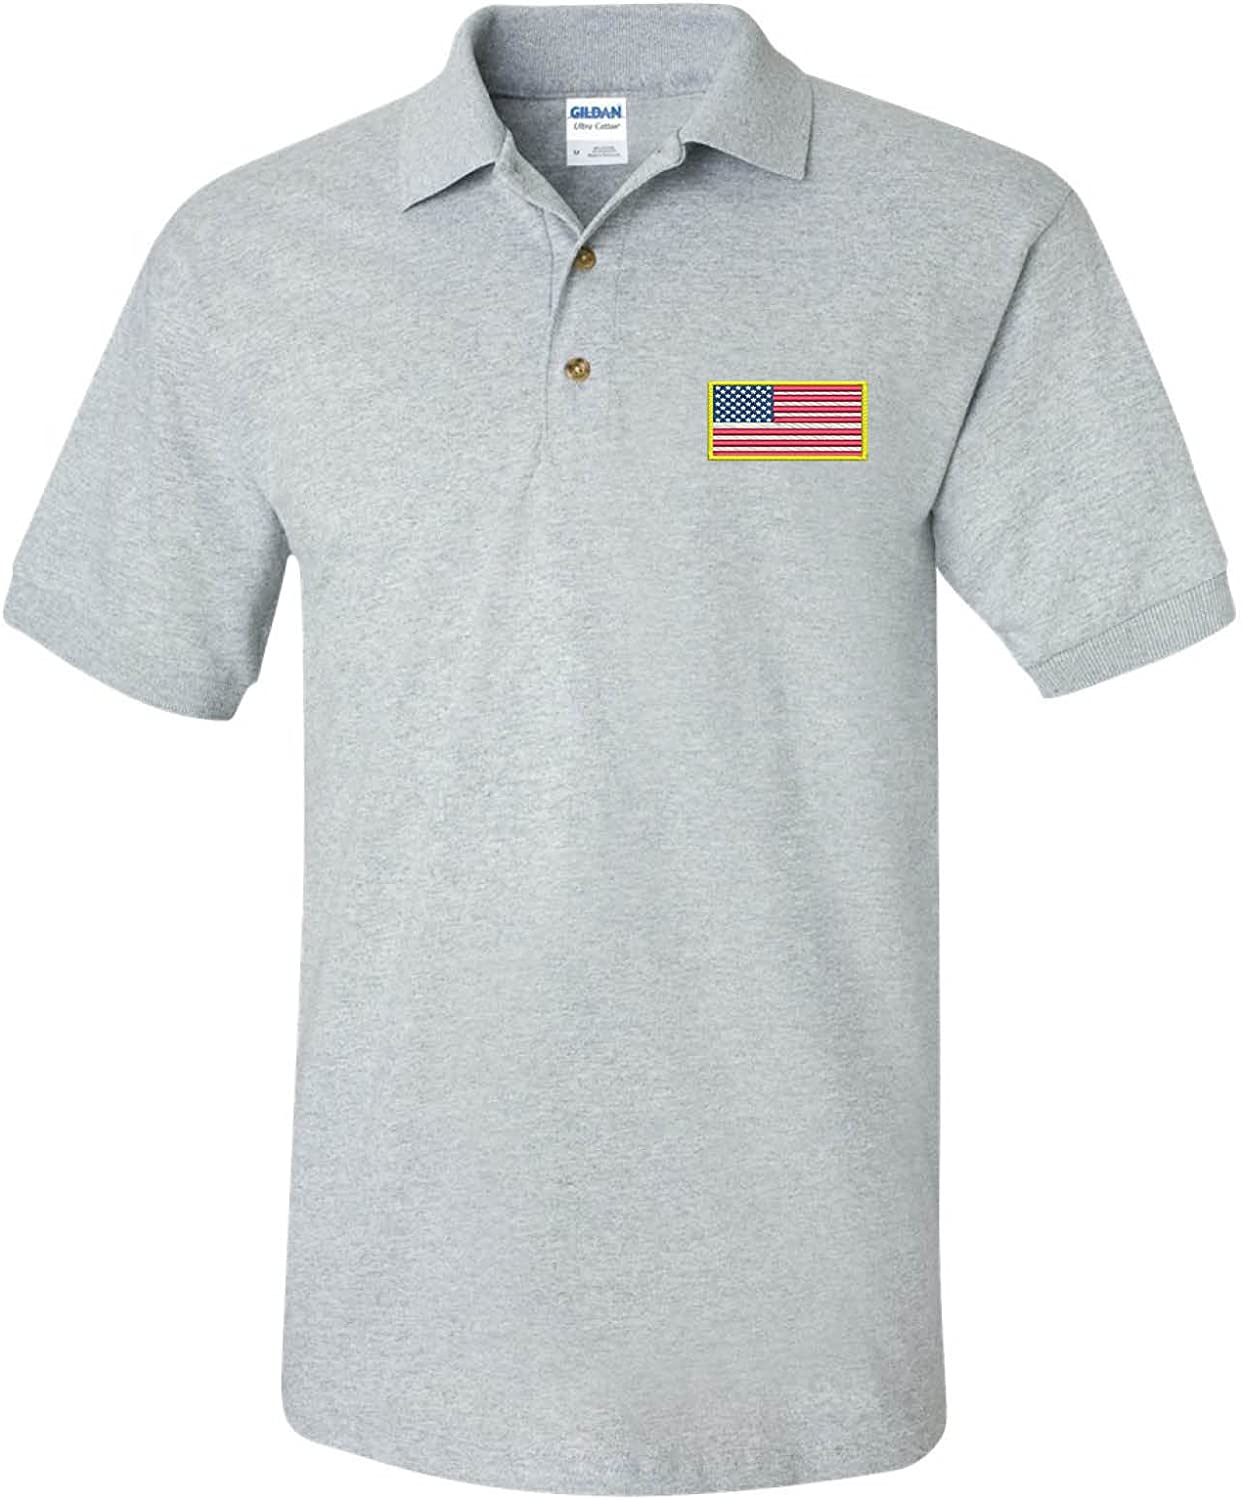 ALLNTRENDS Men's Polo T Online limited product Shirt Flag Embroidery Am Many popular brands Embroidered USA